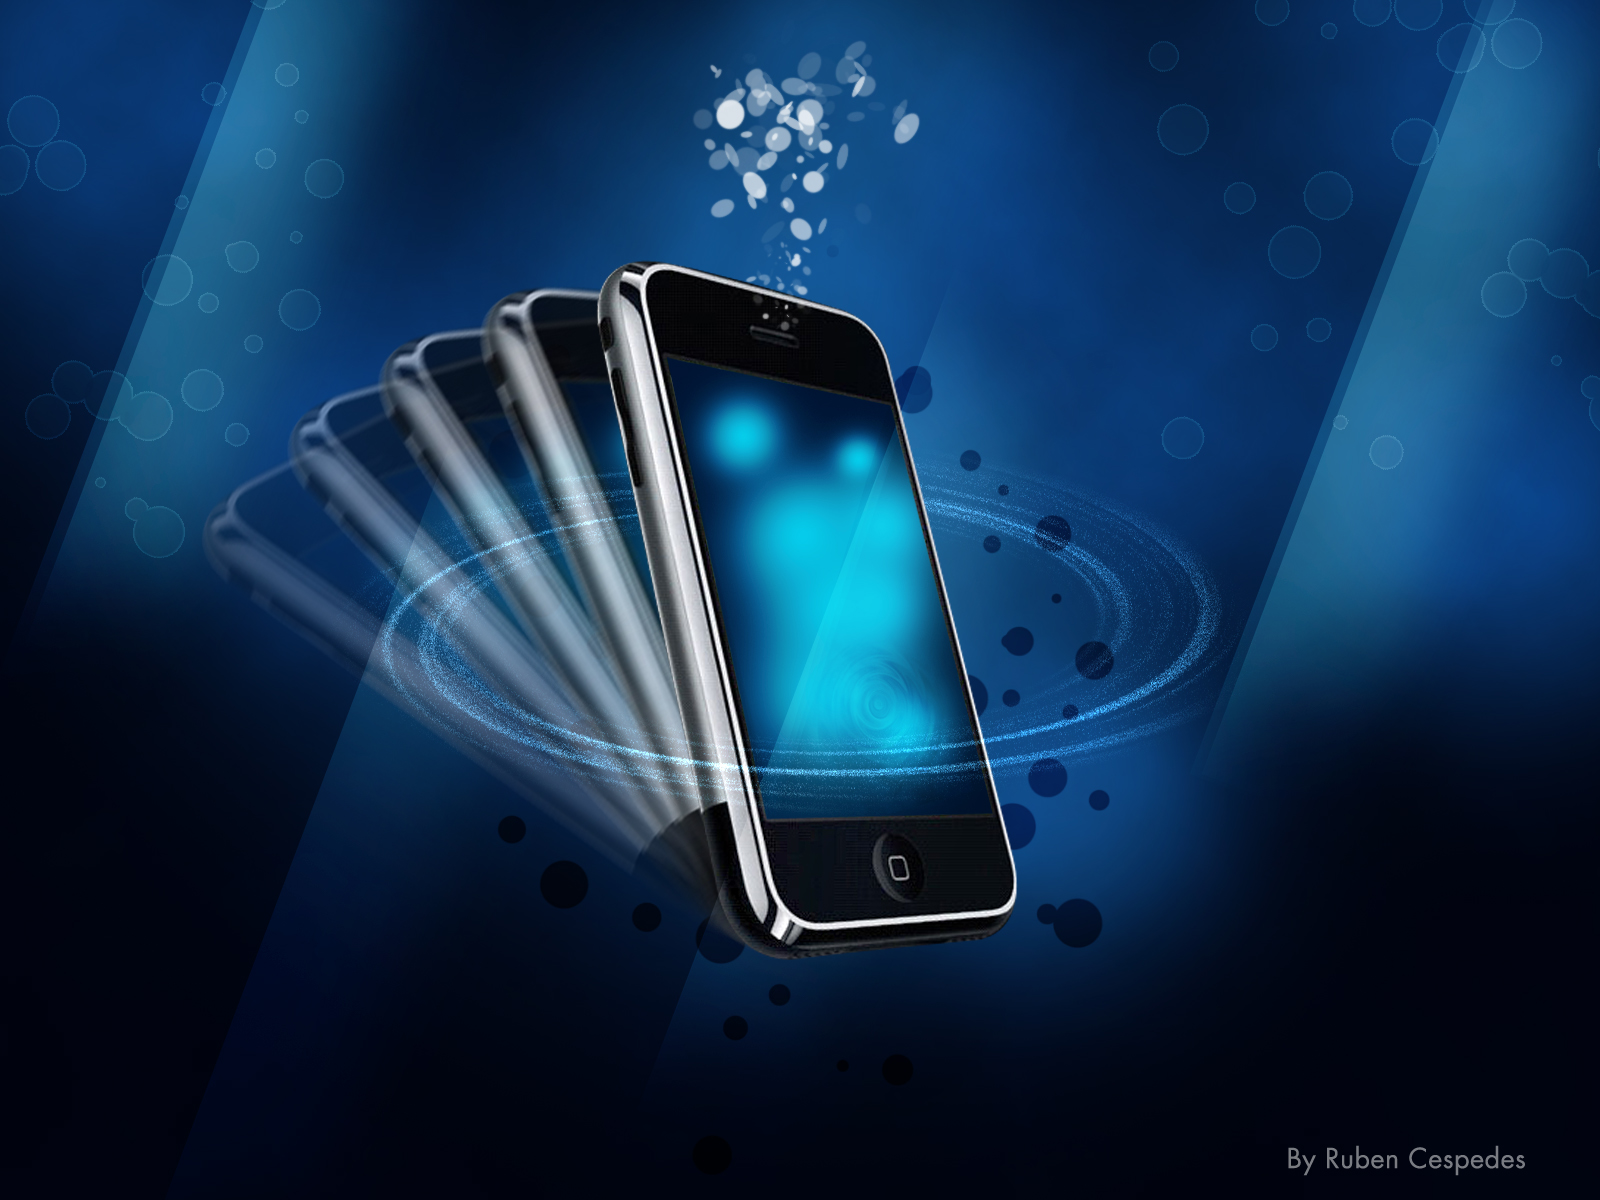 iPhone in Blue Wallpapers HD Wallpapers 1600x1200